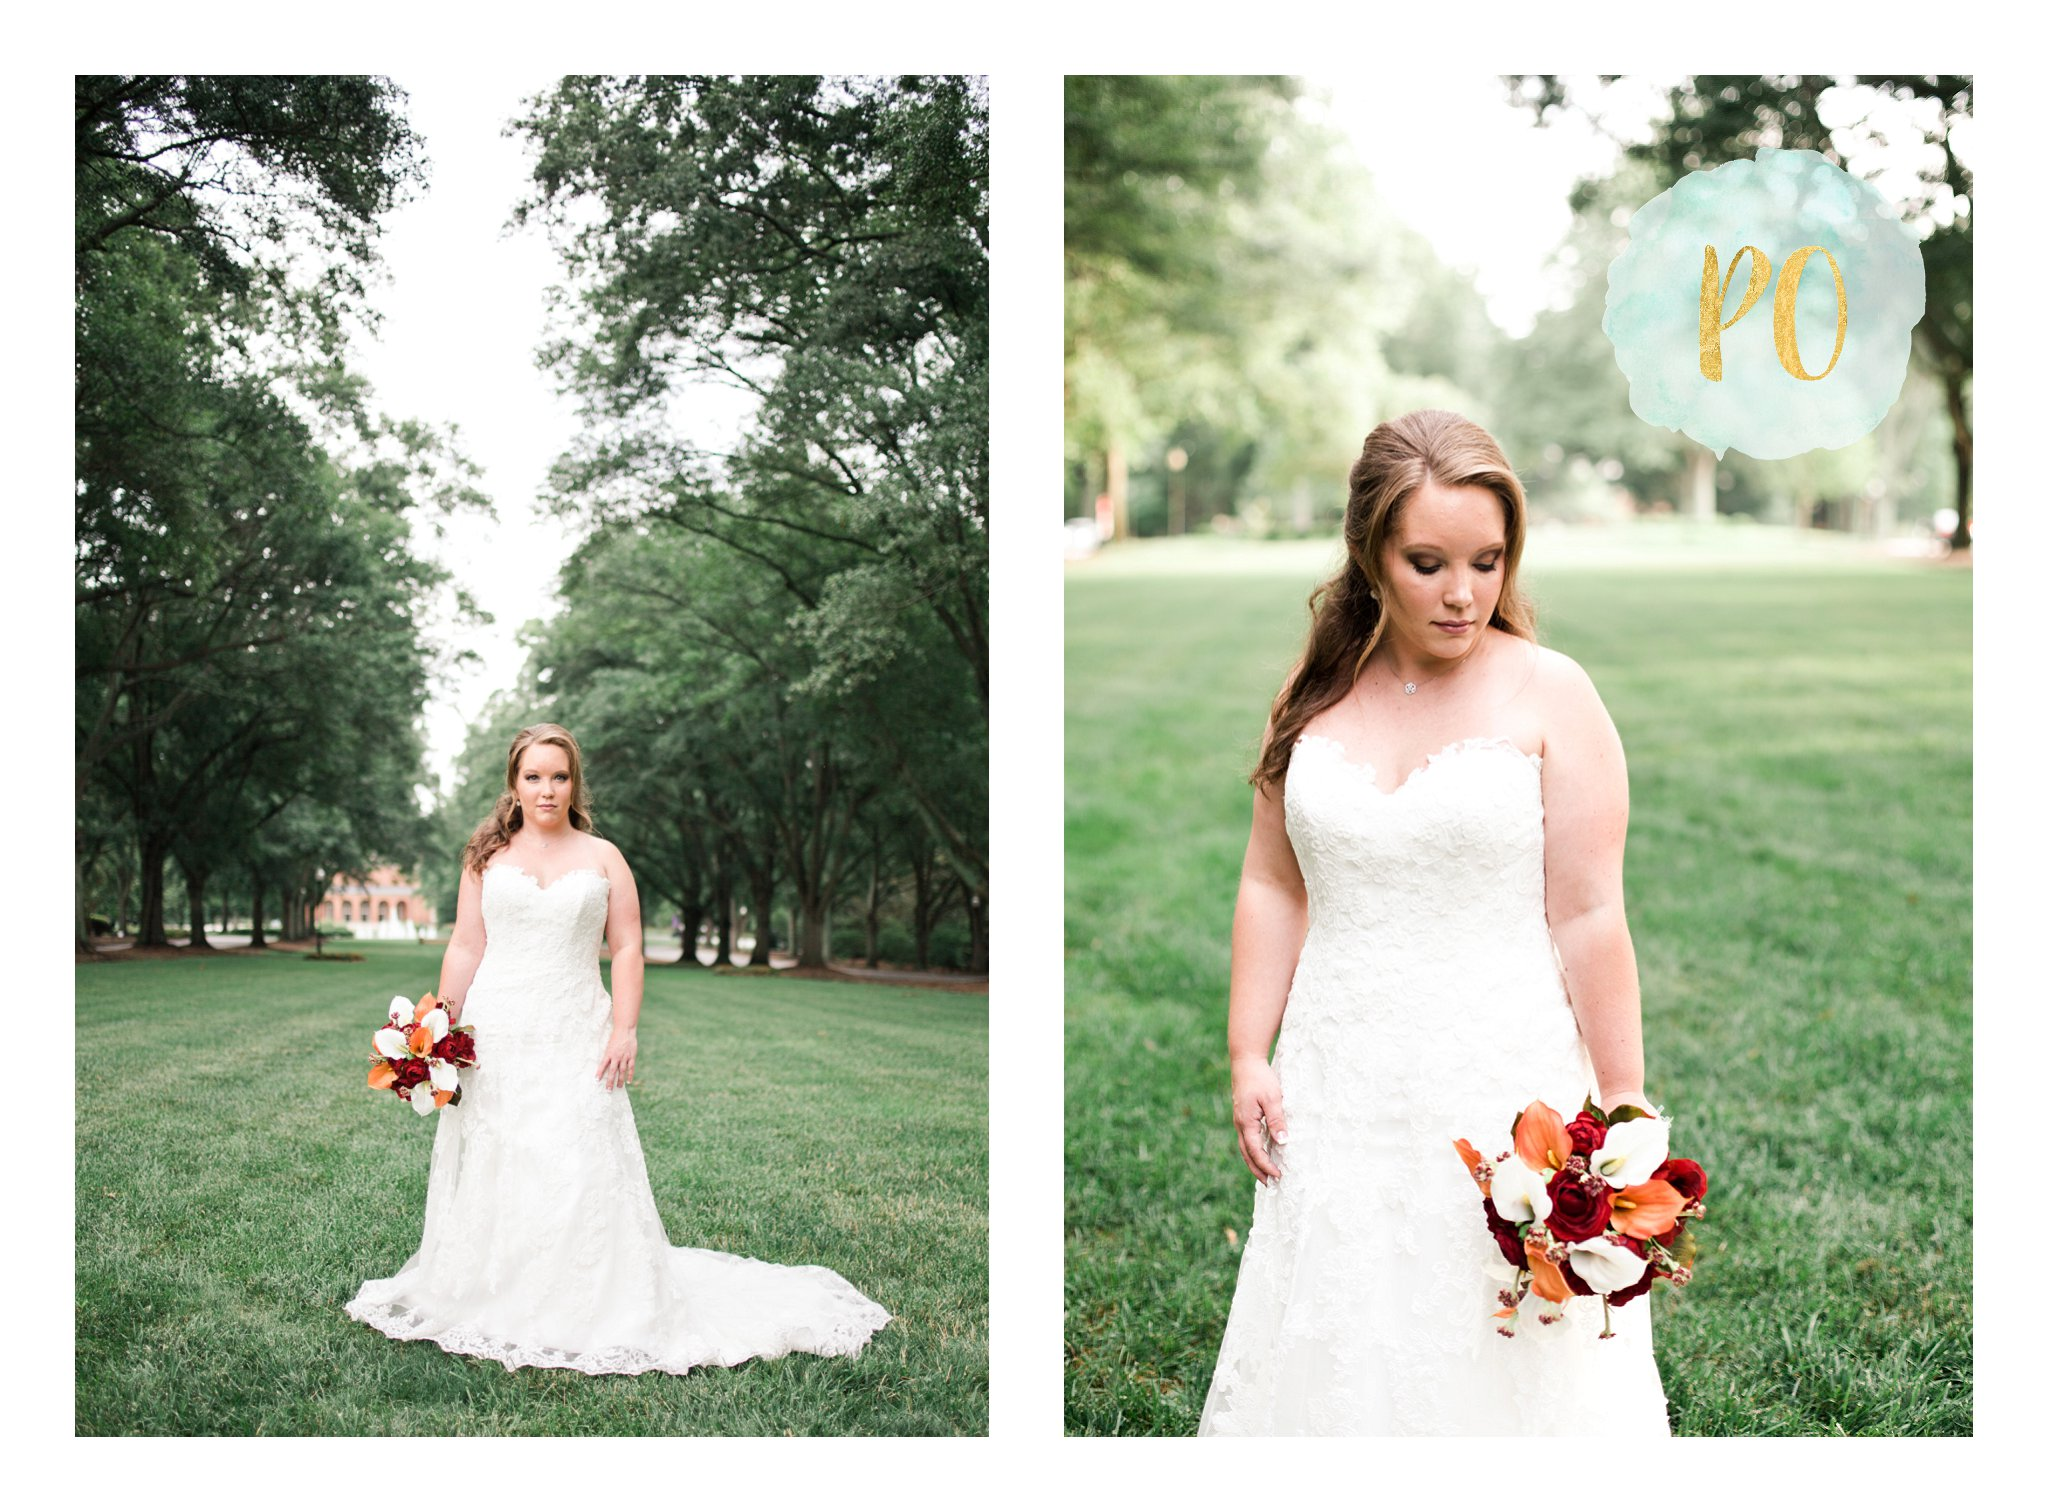 furman-bridal-portrait-greenvile-sc-photos_0005.jpg